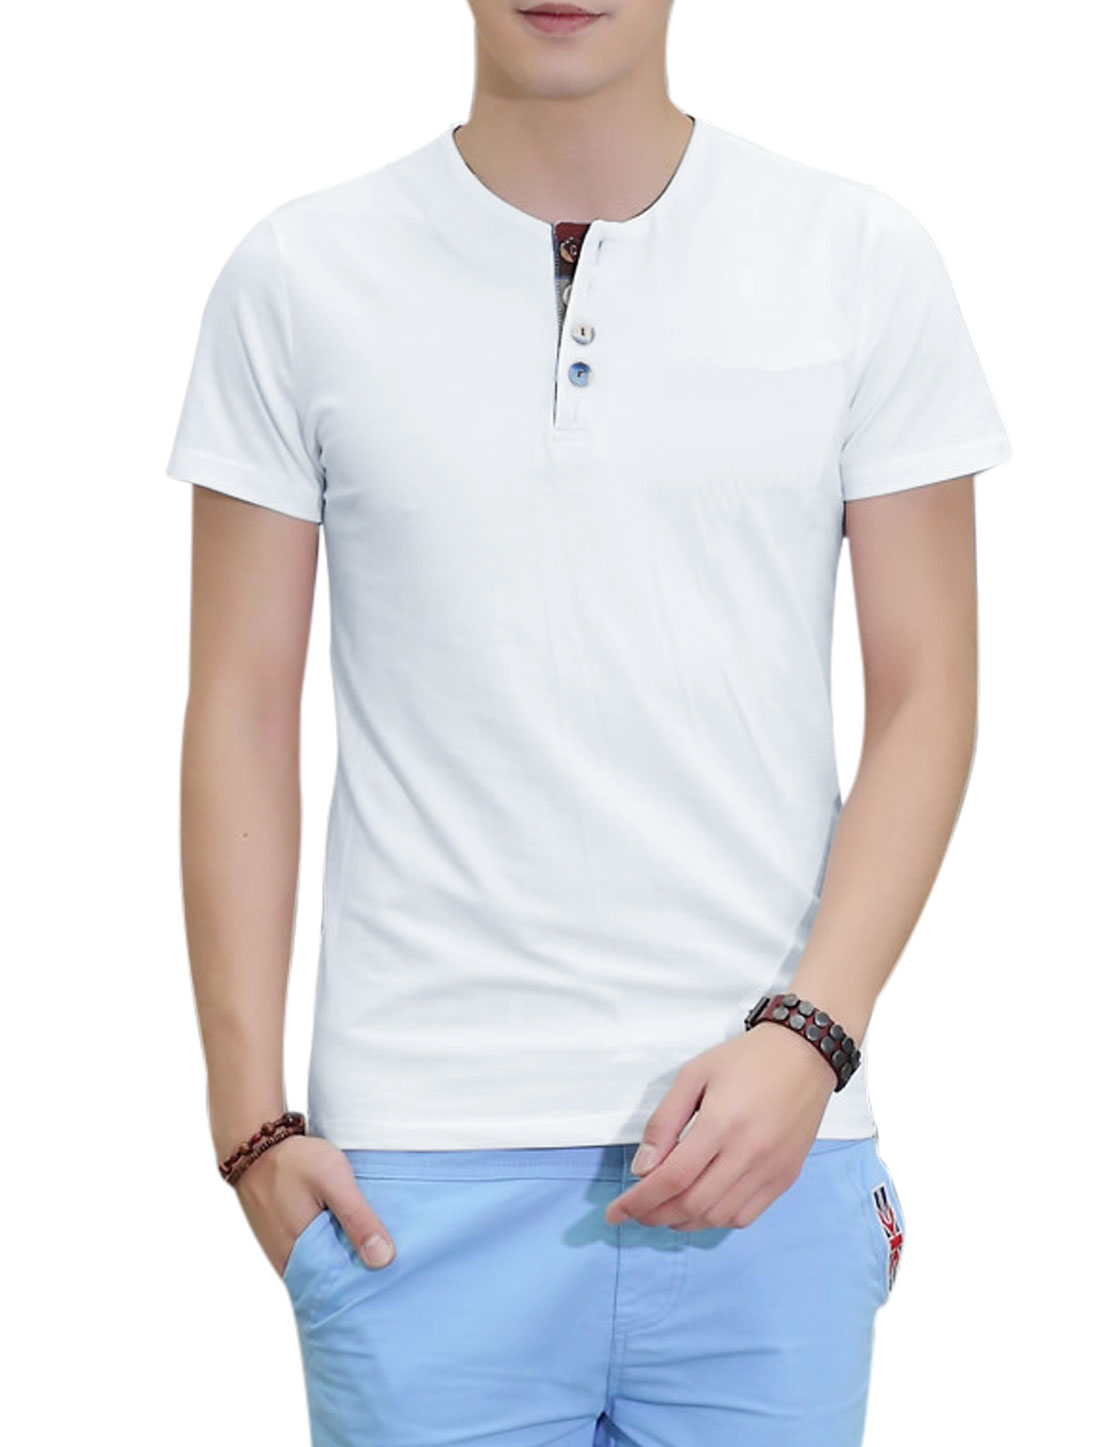 Round Neck Short Sleeve 1/4 Placket Simple T-Shirt for Men White L